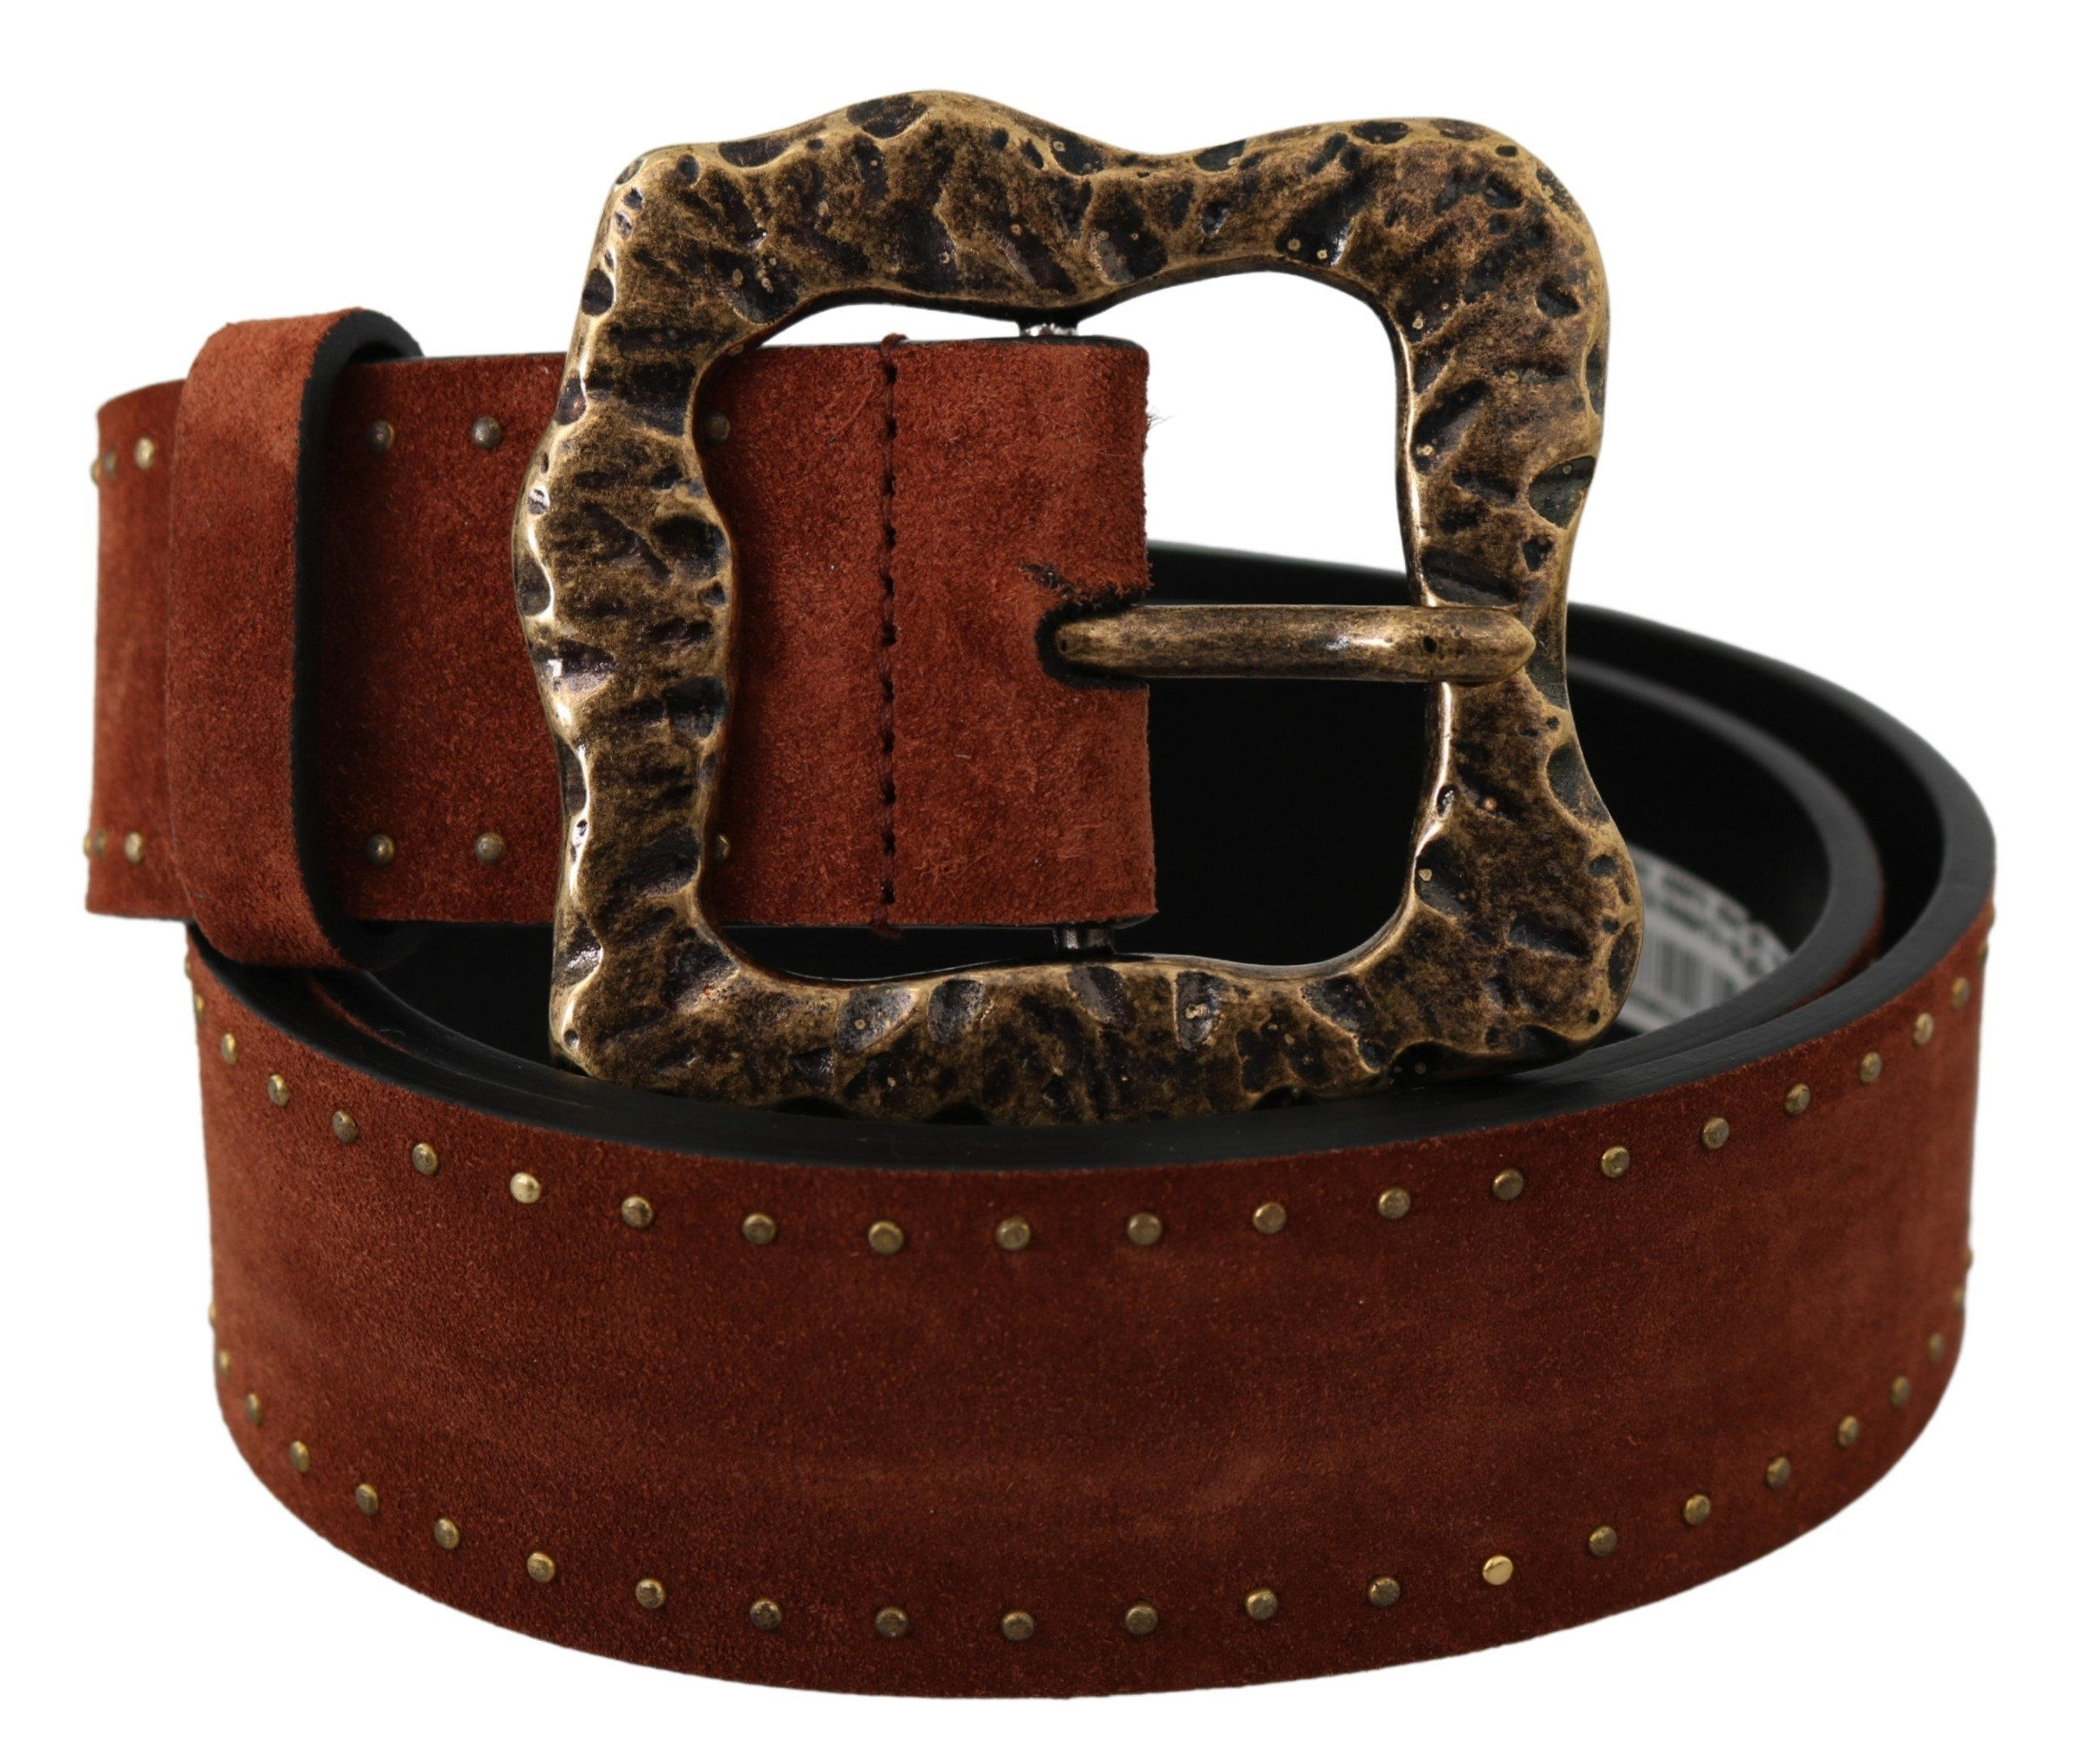 Brown Suede Leather Studded Baroque Belt - 90 cm / 36 Inches